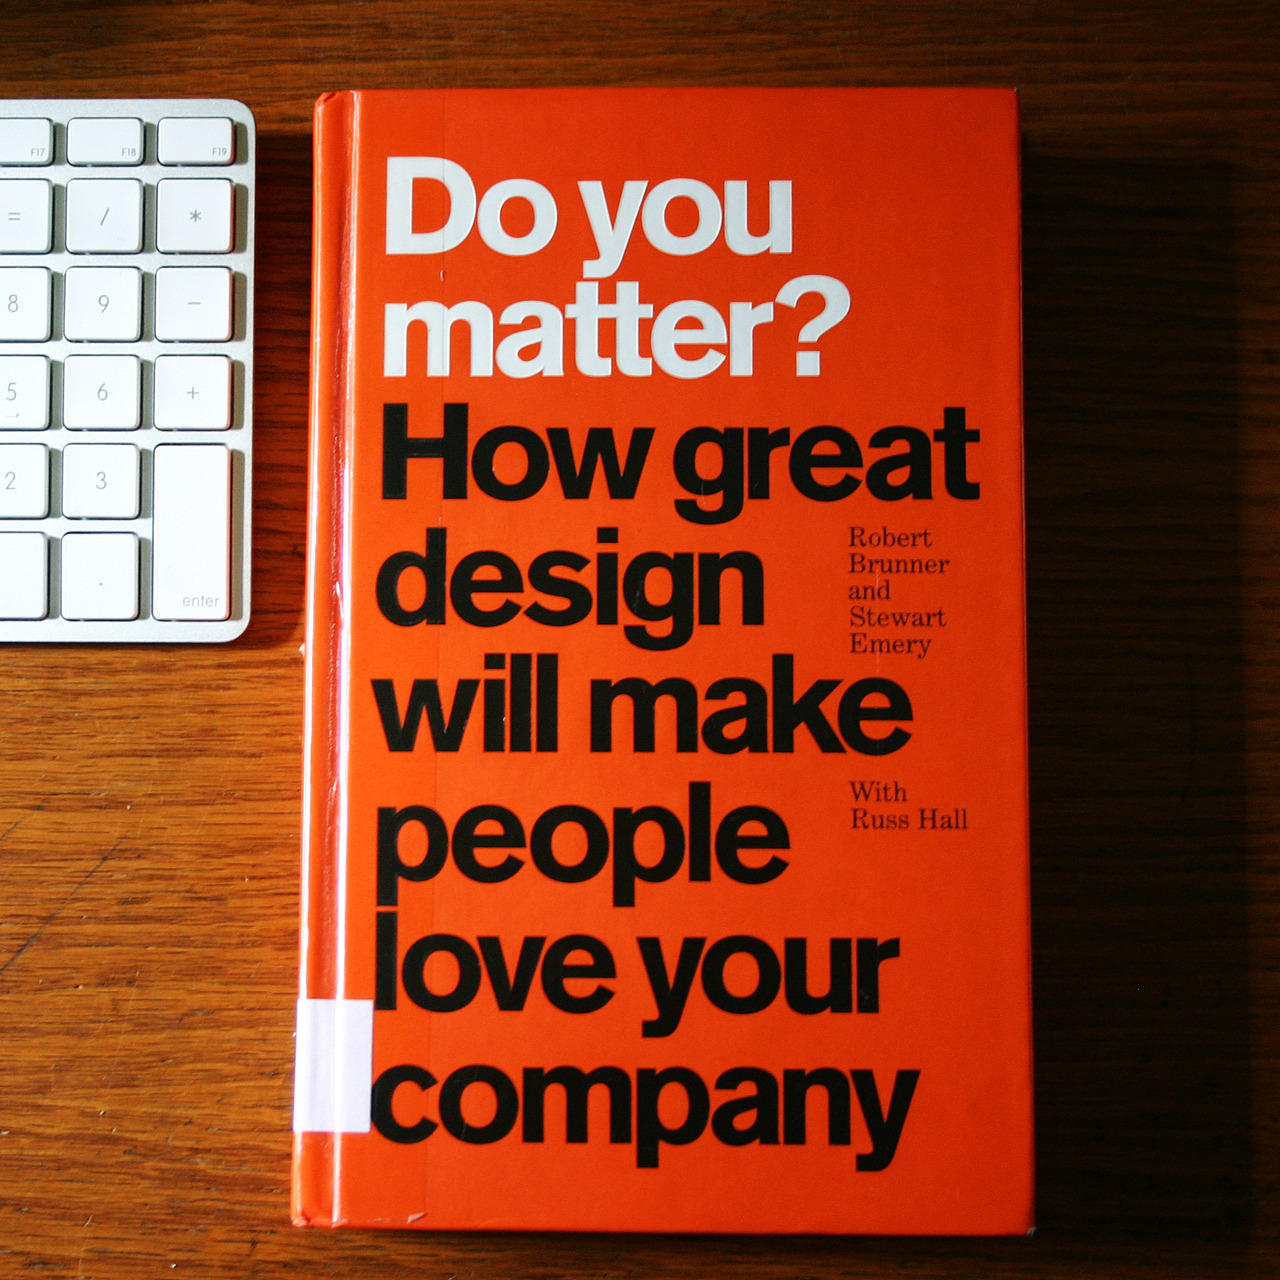 This week's reading: Do you matter? How great design will make people love your company. It's basically a book about how and why Apple gets everything right and countless other companies suck. Rule No.1 in business: Don't Suck. I just received the first series of product photos on white background from Guillaume Simoneau. This Wednesday we'll be photographing the model 500 model on location for a more authentic feel. Stay tuned. www.doyoumatter.com